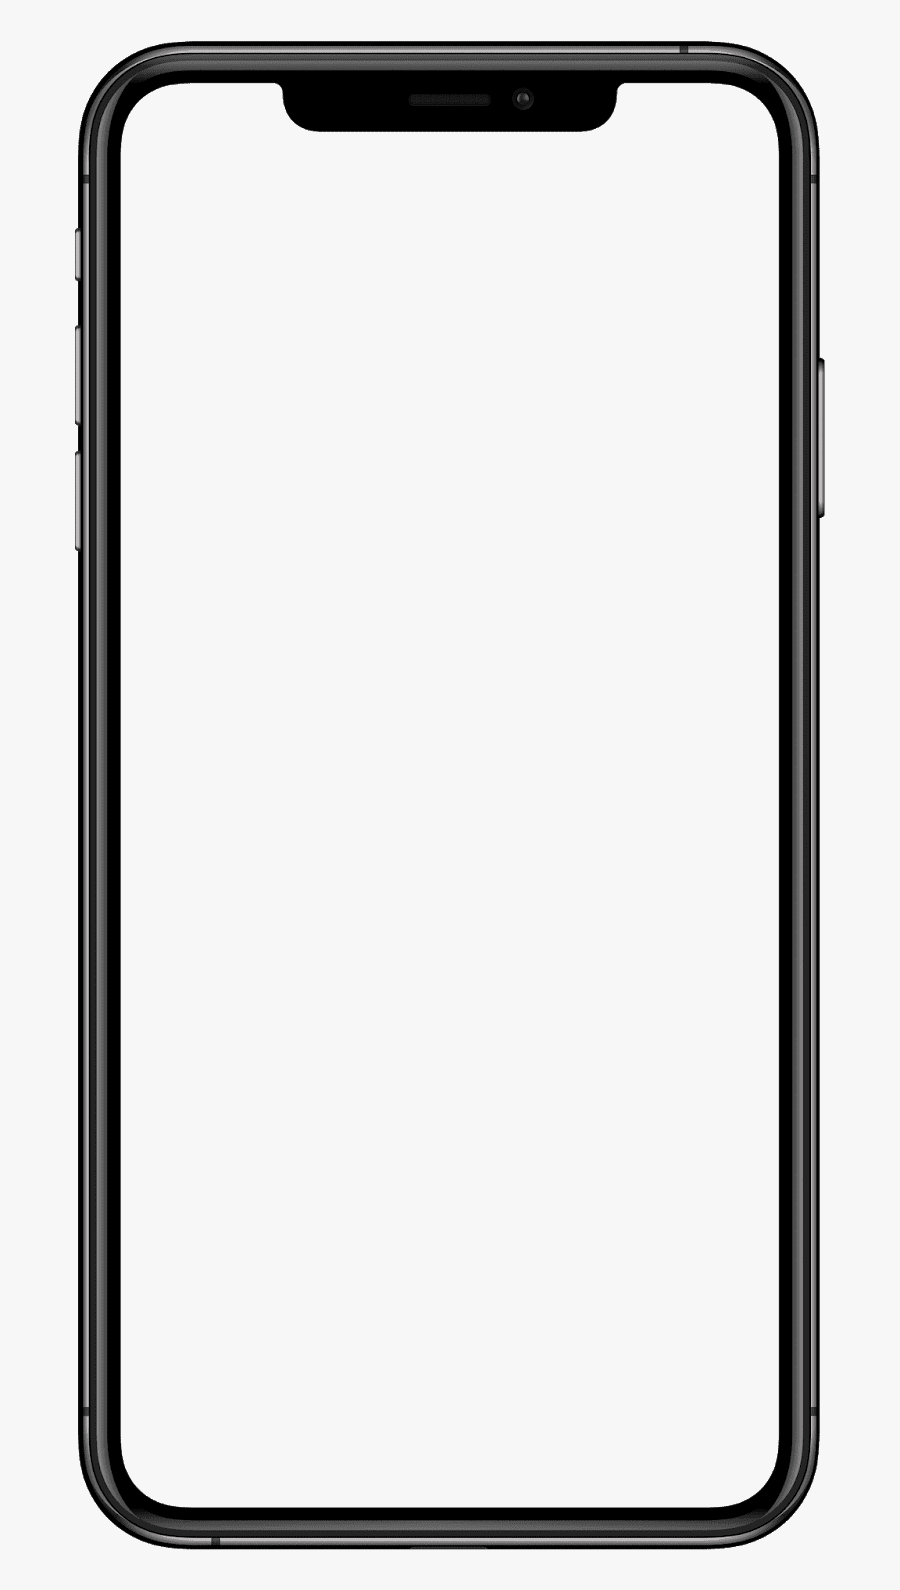 Apple Iphone Xs Transparent Mobile Free Download Searchpng - App Store, Transparent Clipart